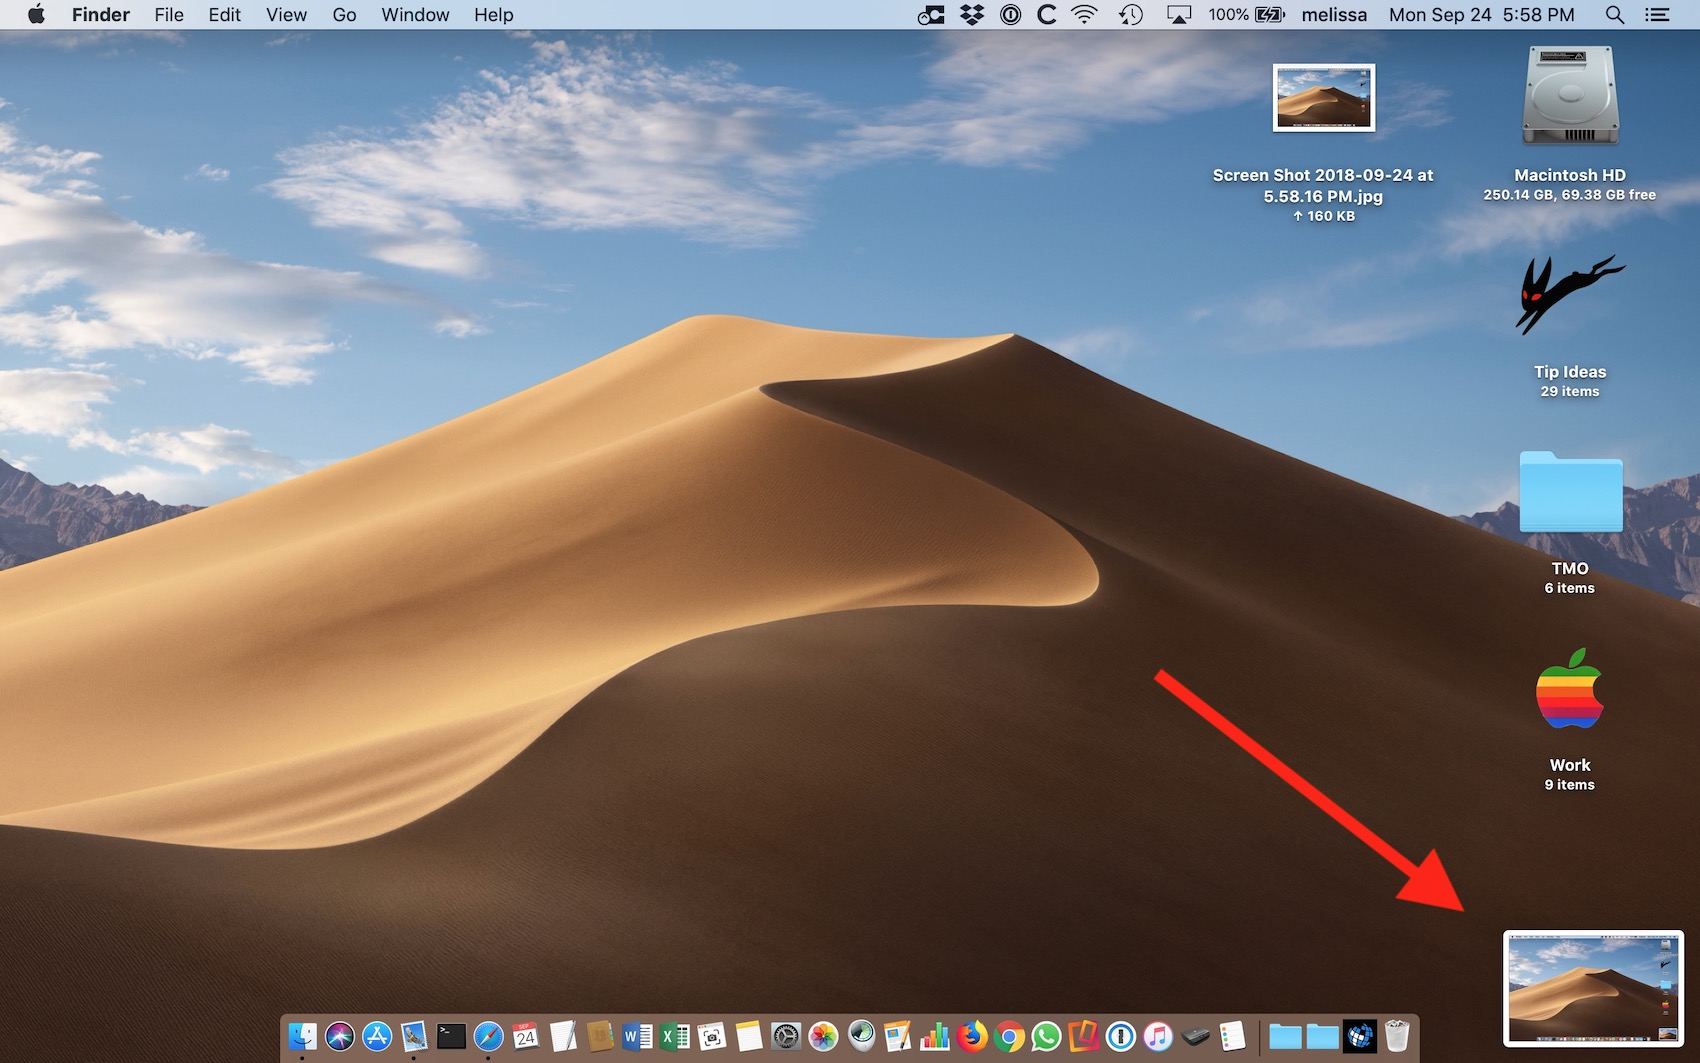 Thumbnail of Screenshot in macOS Mojave